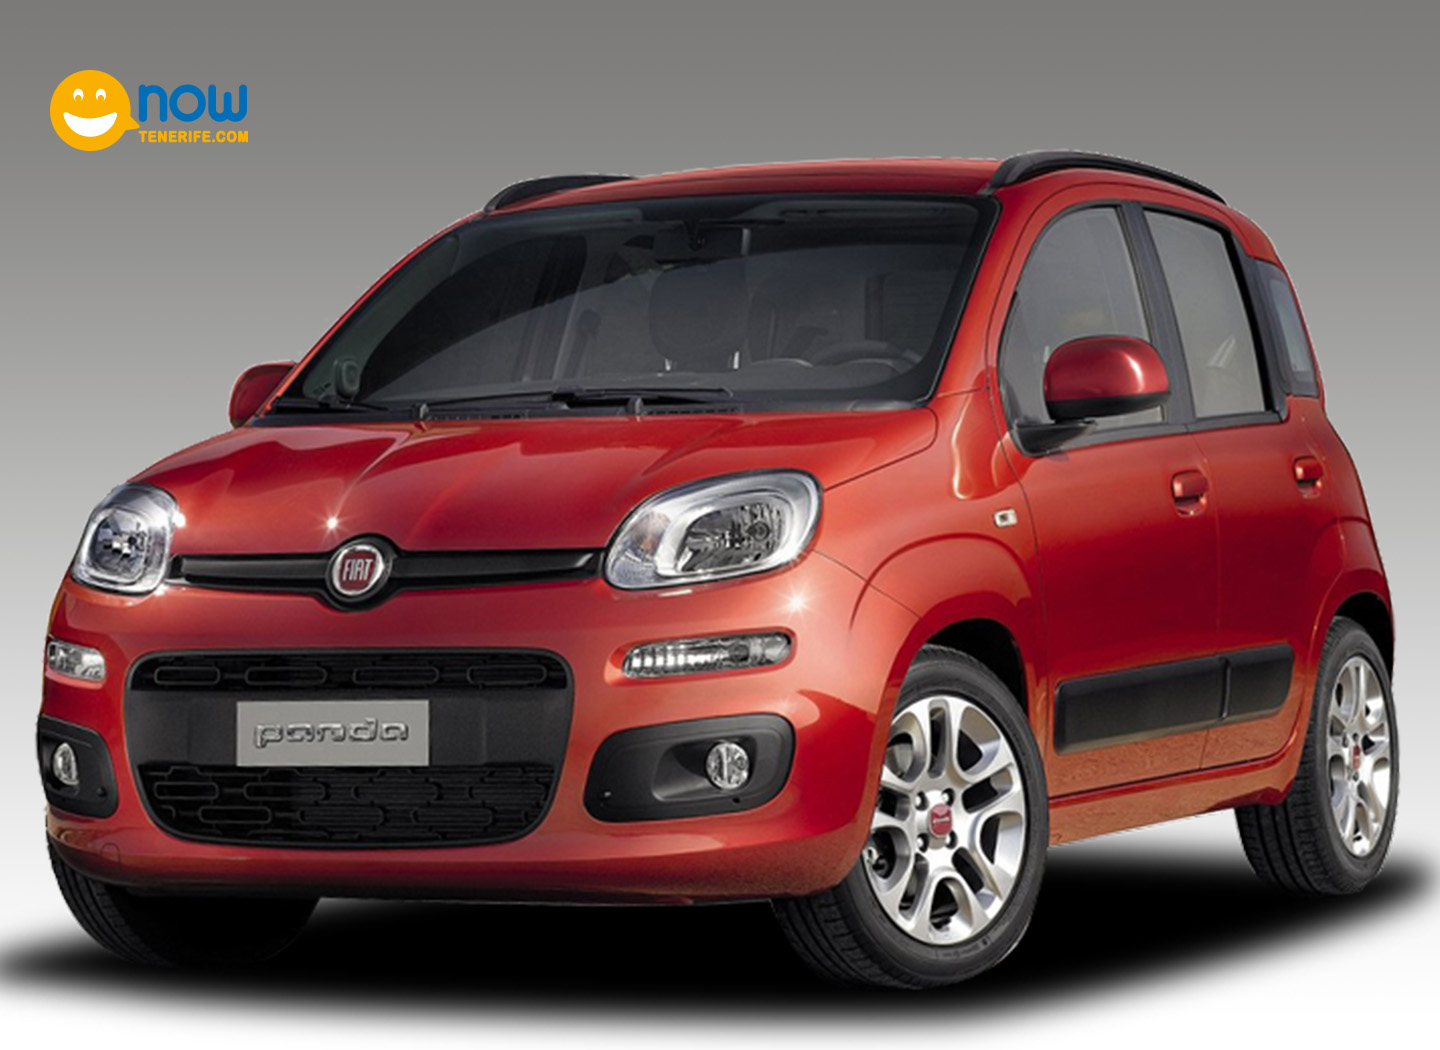 1 fiat panda now tenerife. Black Bedroom Furniture Sets. Home Design Ideas